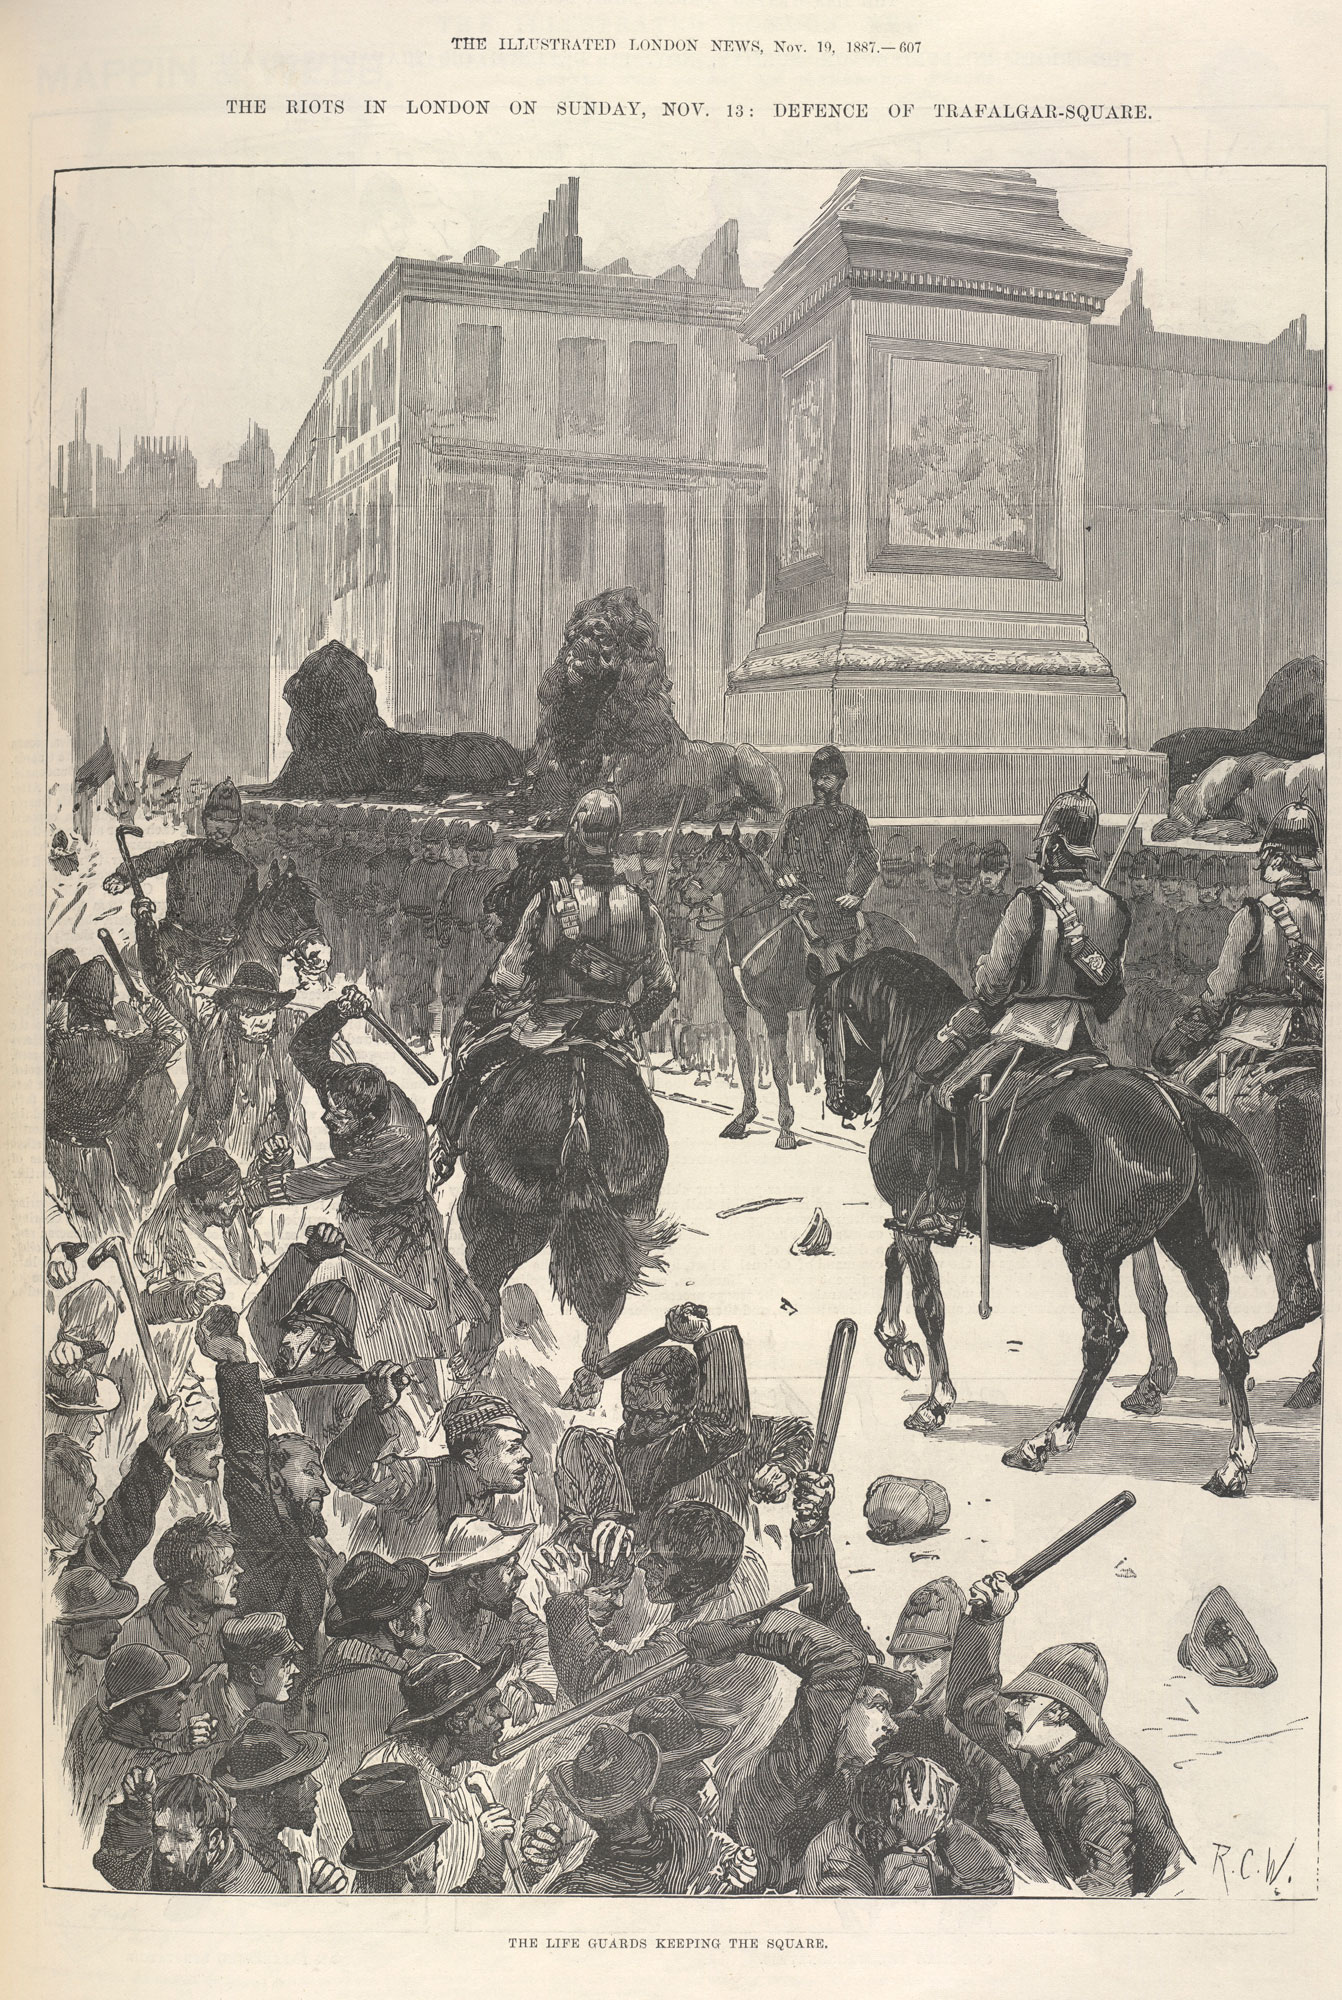 'The Riots in London on Sunday' from the Illustrated London News